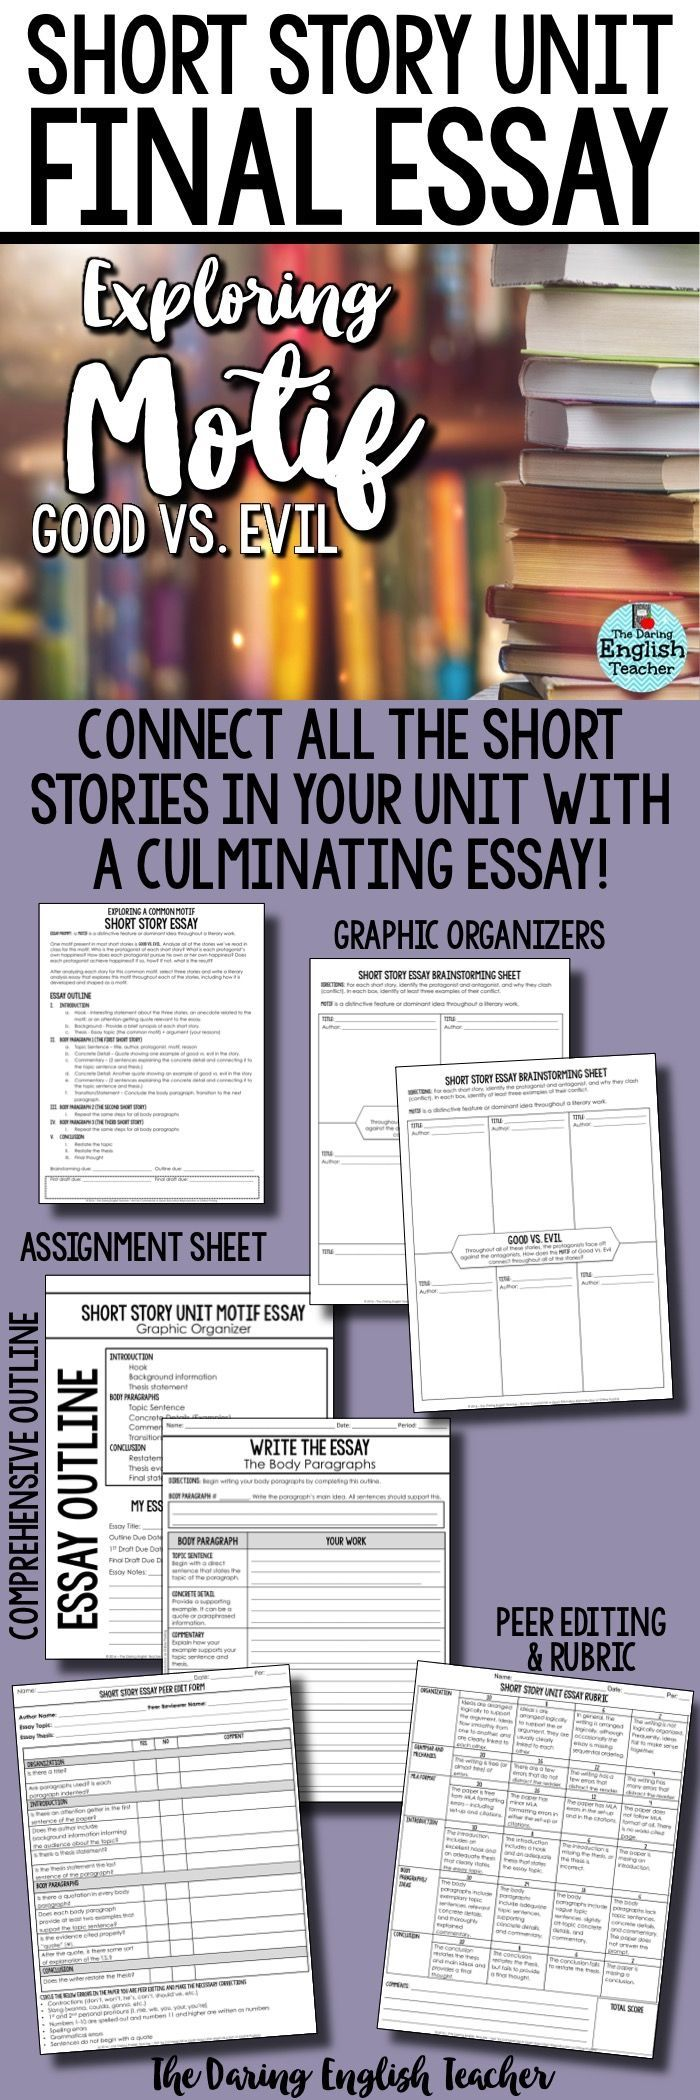 short story unit final essay analyzing motif good vs evil complete your short story unit a literary analysis essay that explores the common motif of